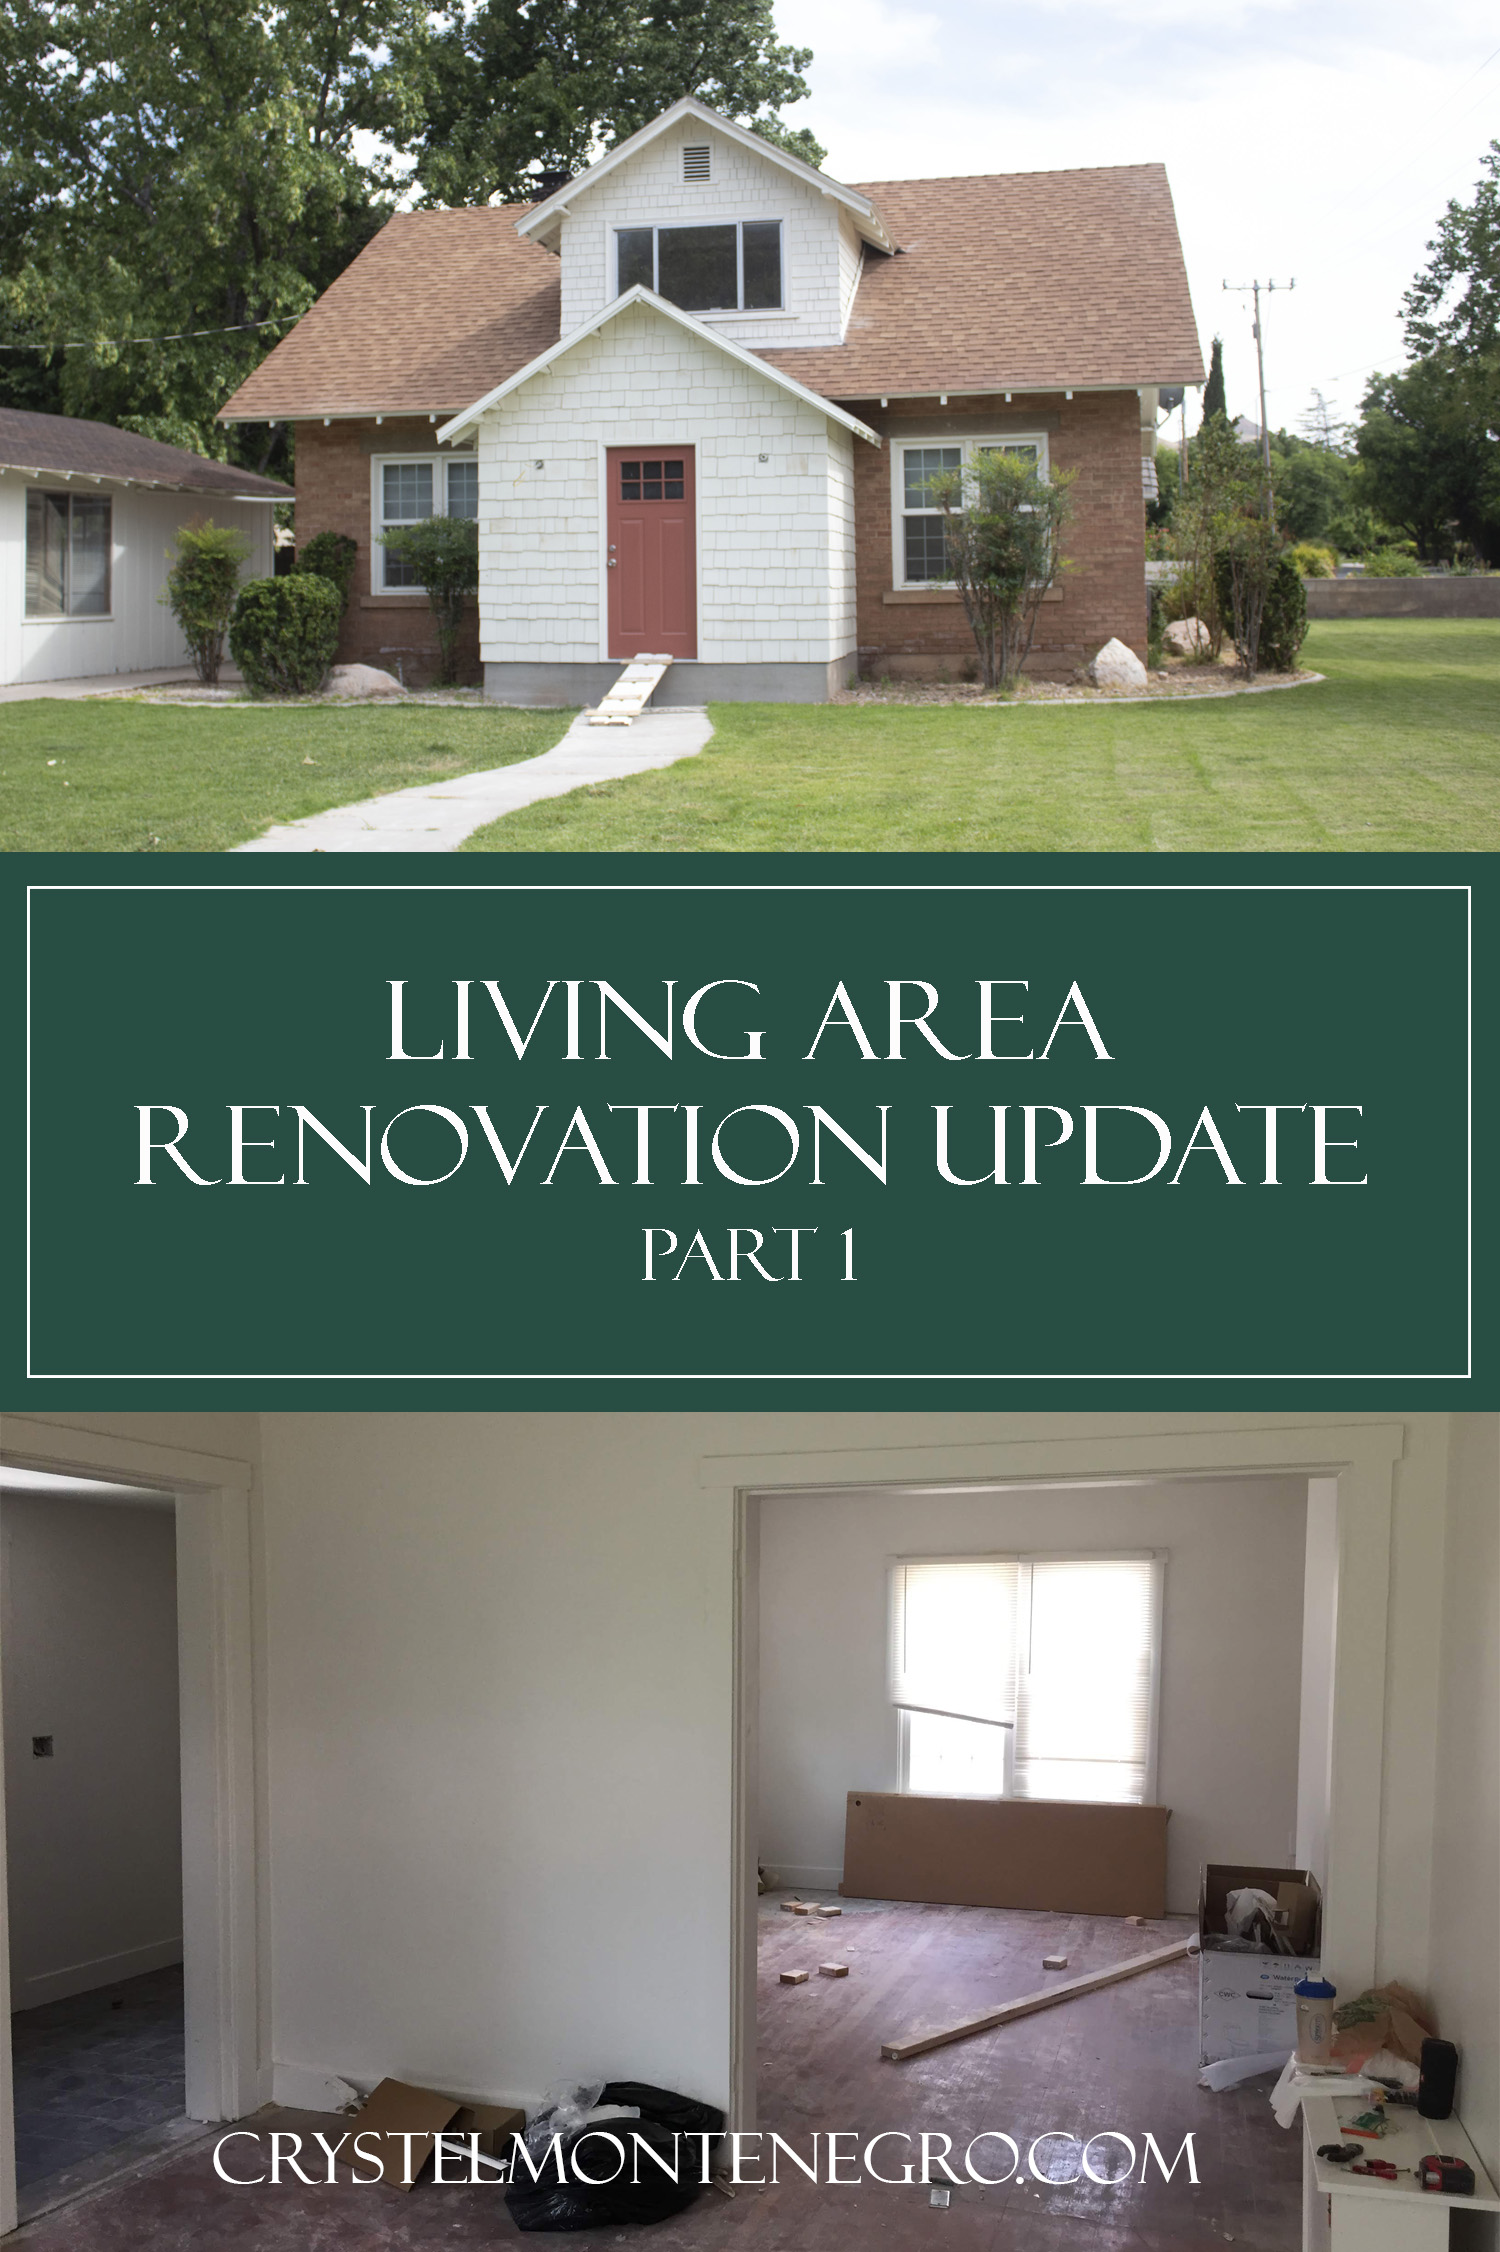 Pinterest pin image: Home exterior and interior before remodel